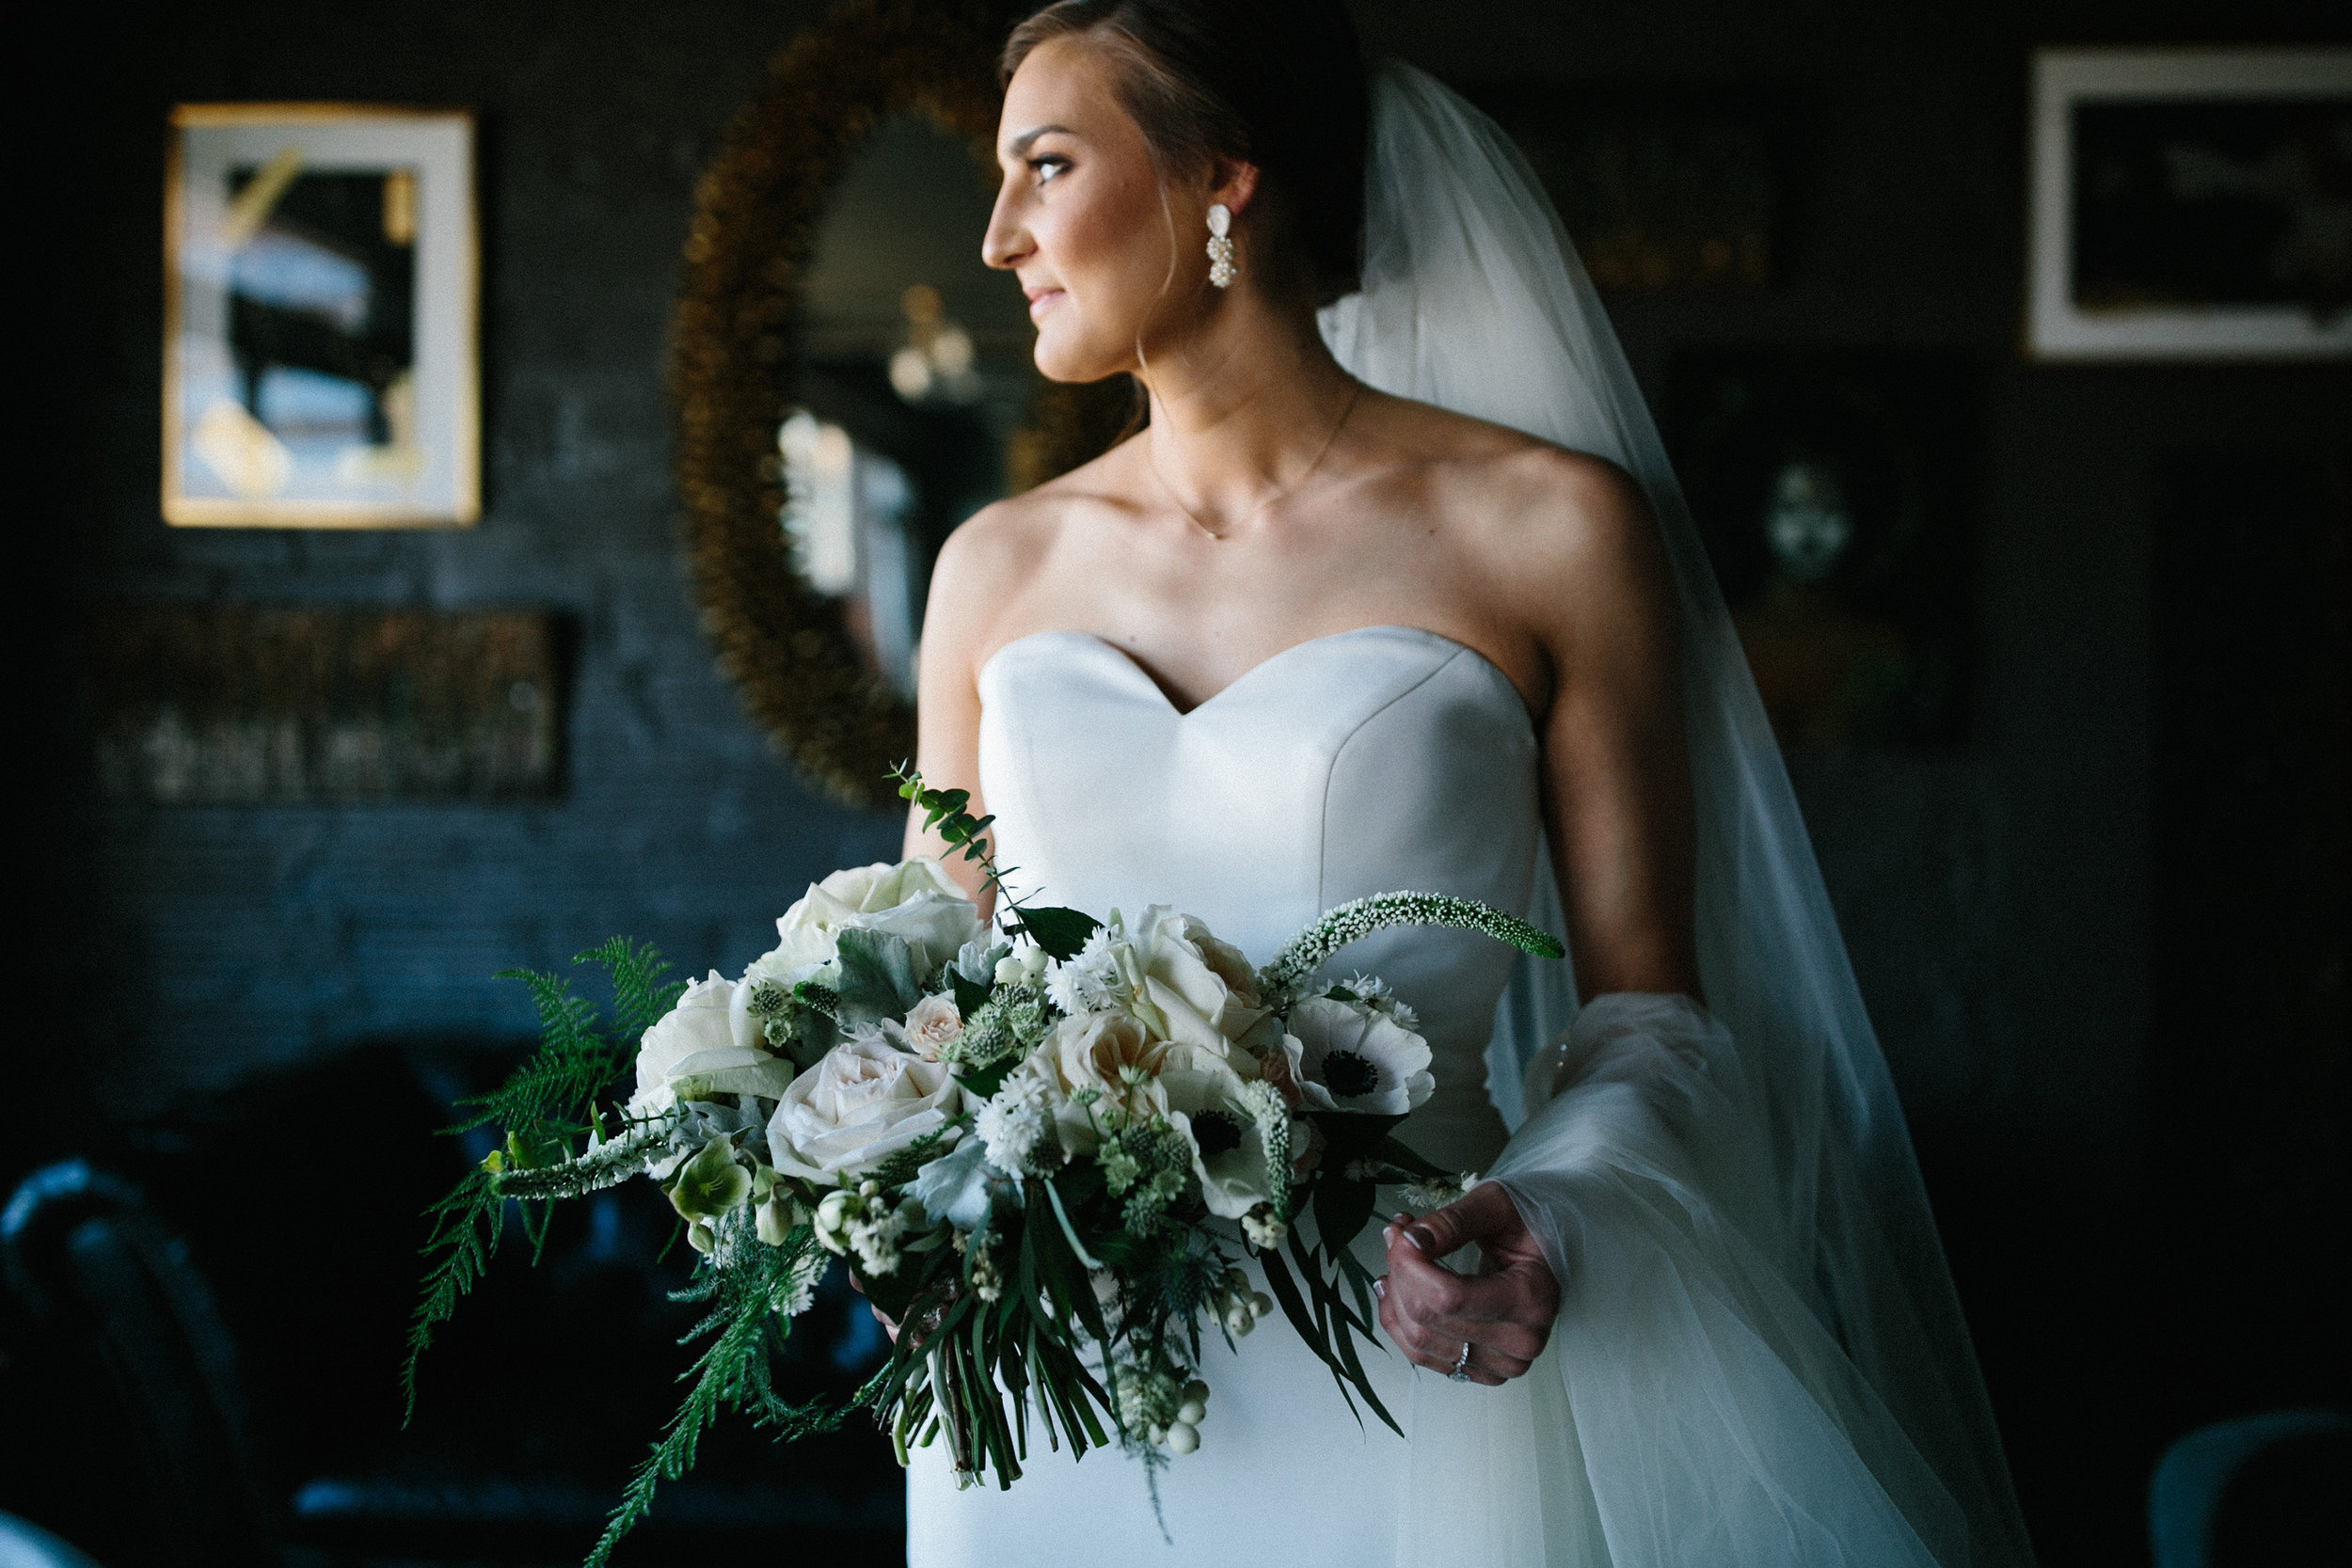 bride-bouquet-jett-walker-photography.jpg